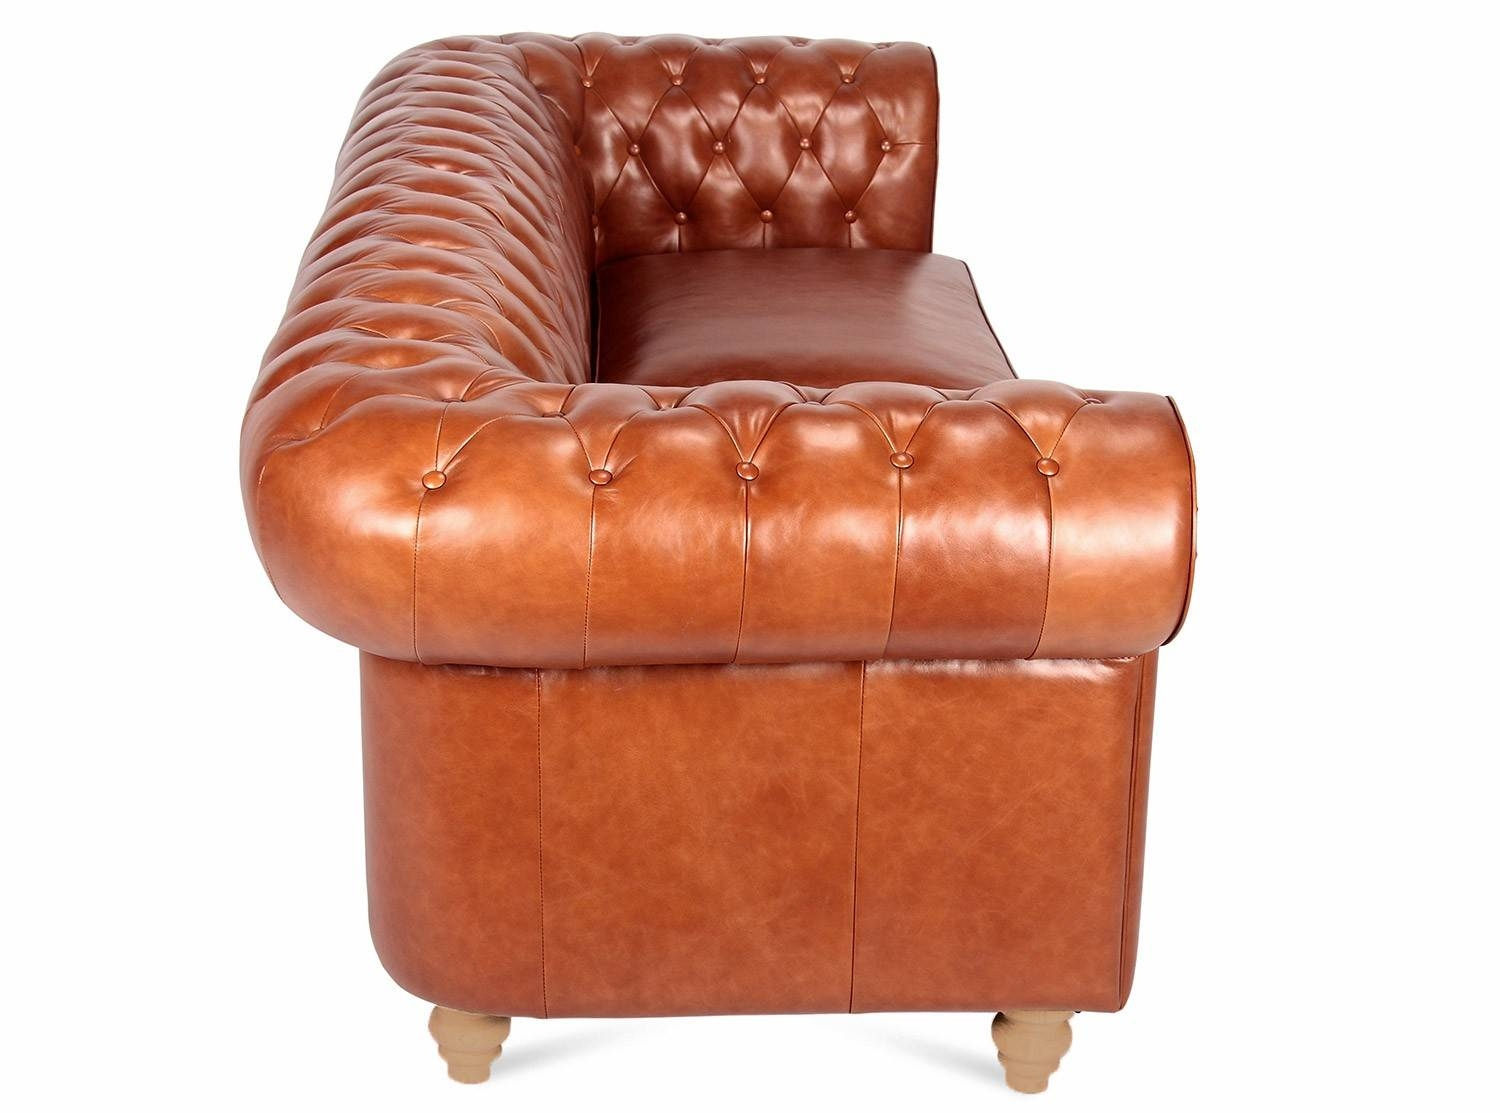 Chesterfield Sofa 3 Seater in Aniline Leather Sofas (Image 15 of 30)